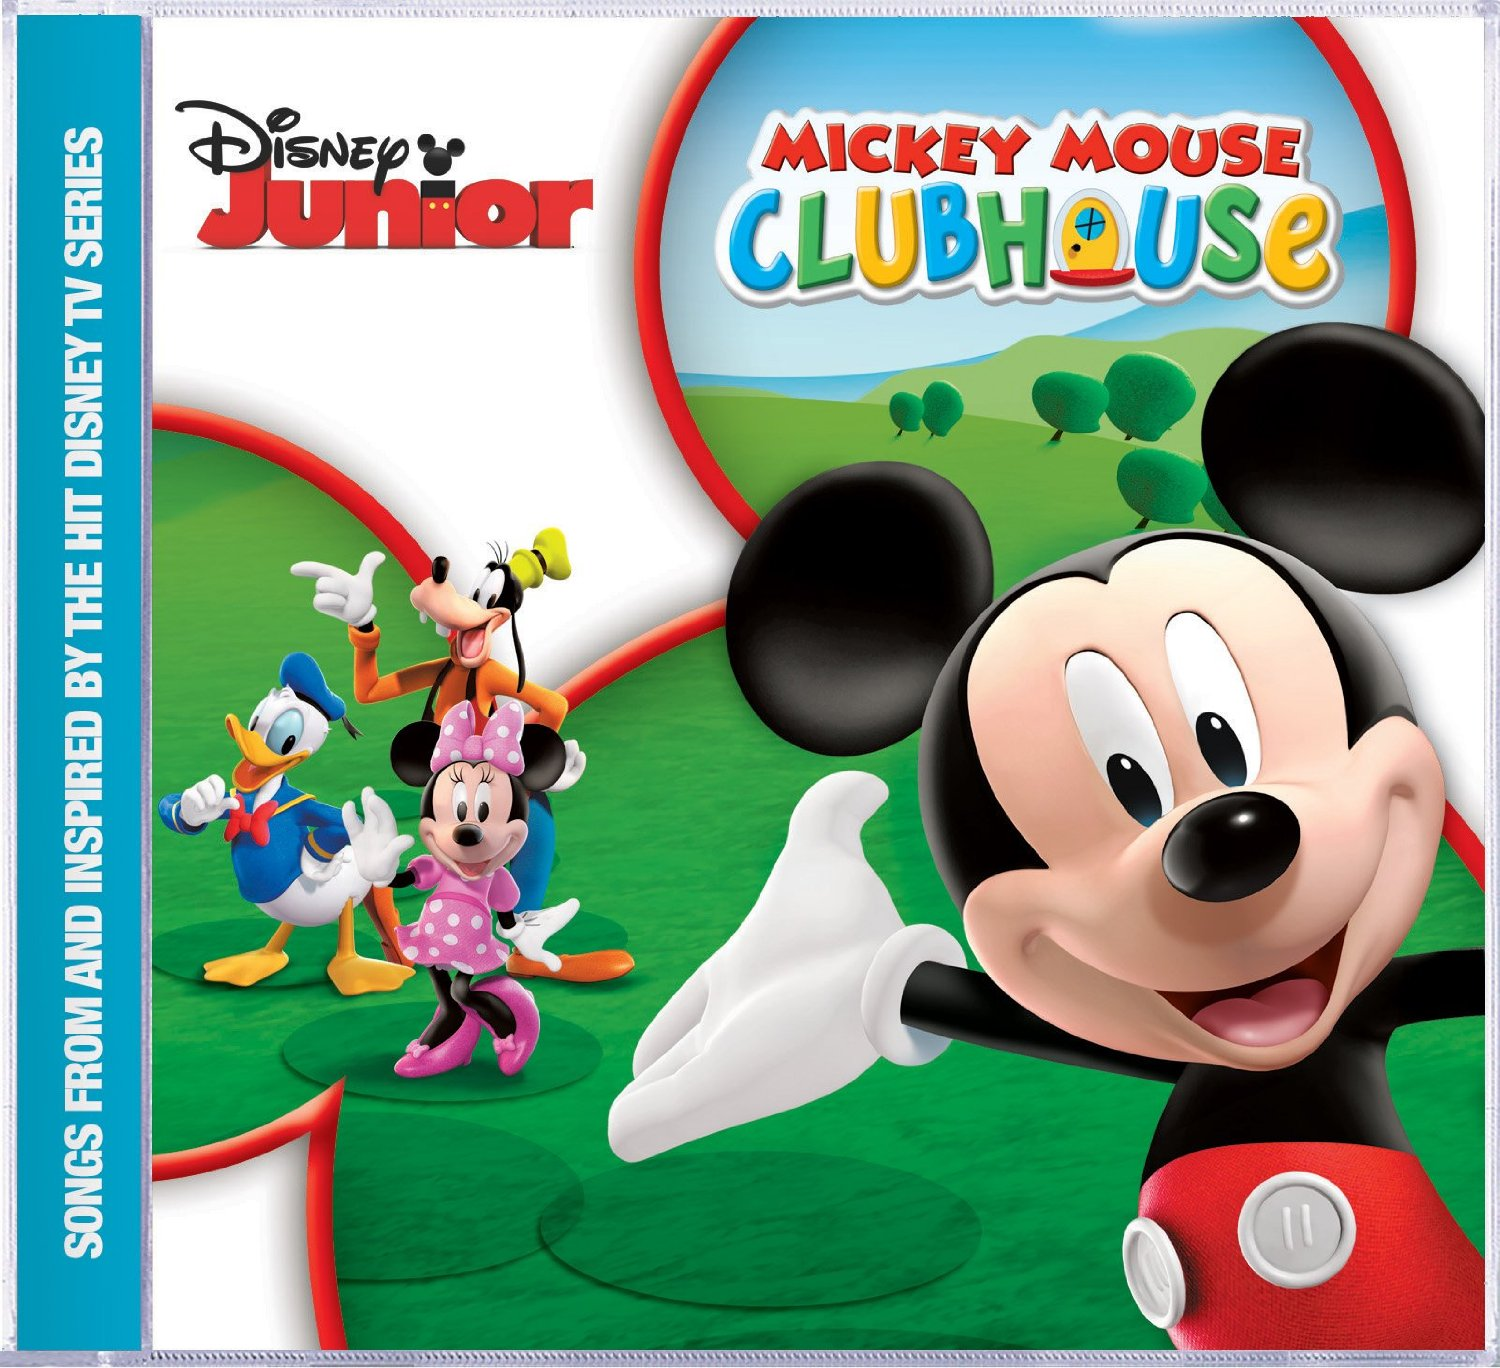 Playhouse Disney Mickey Mouse Clubhouse Images & Pictures - Becuo